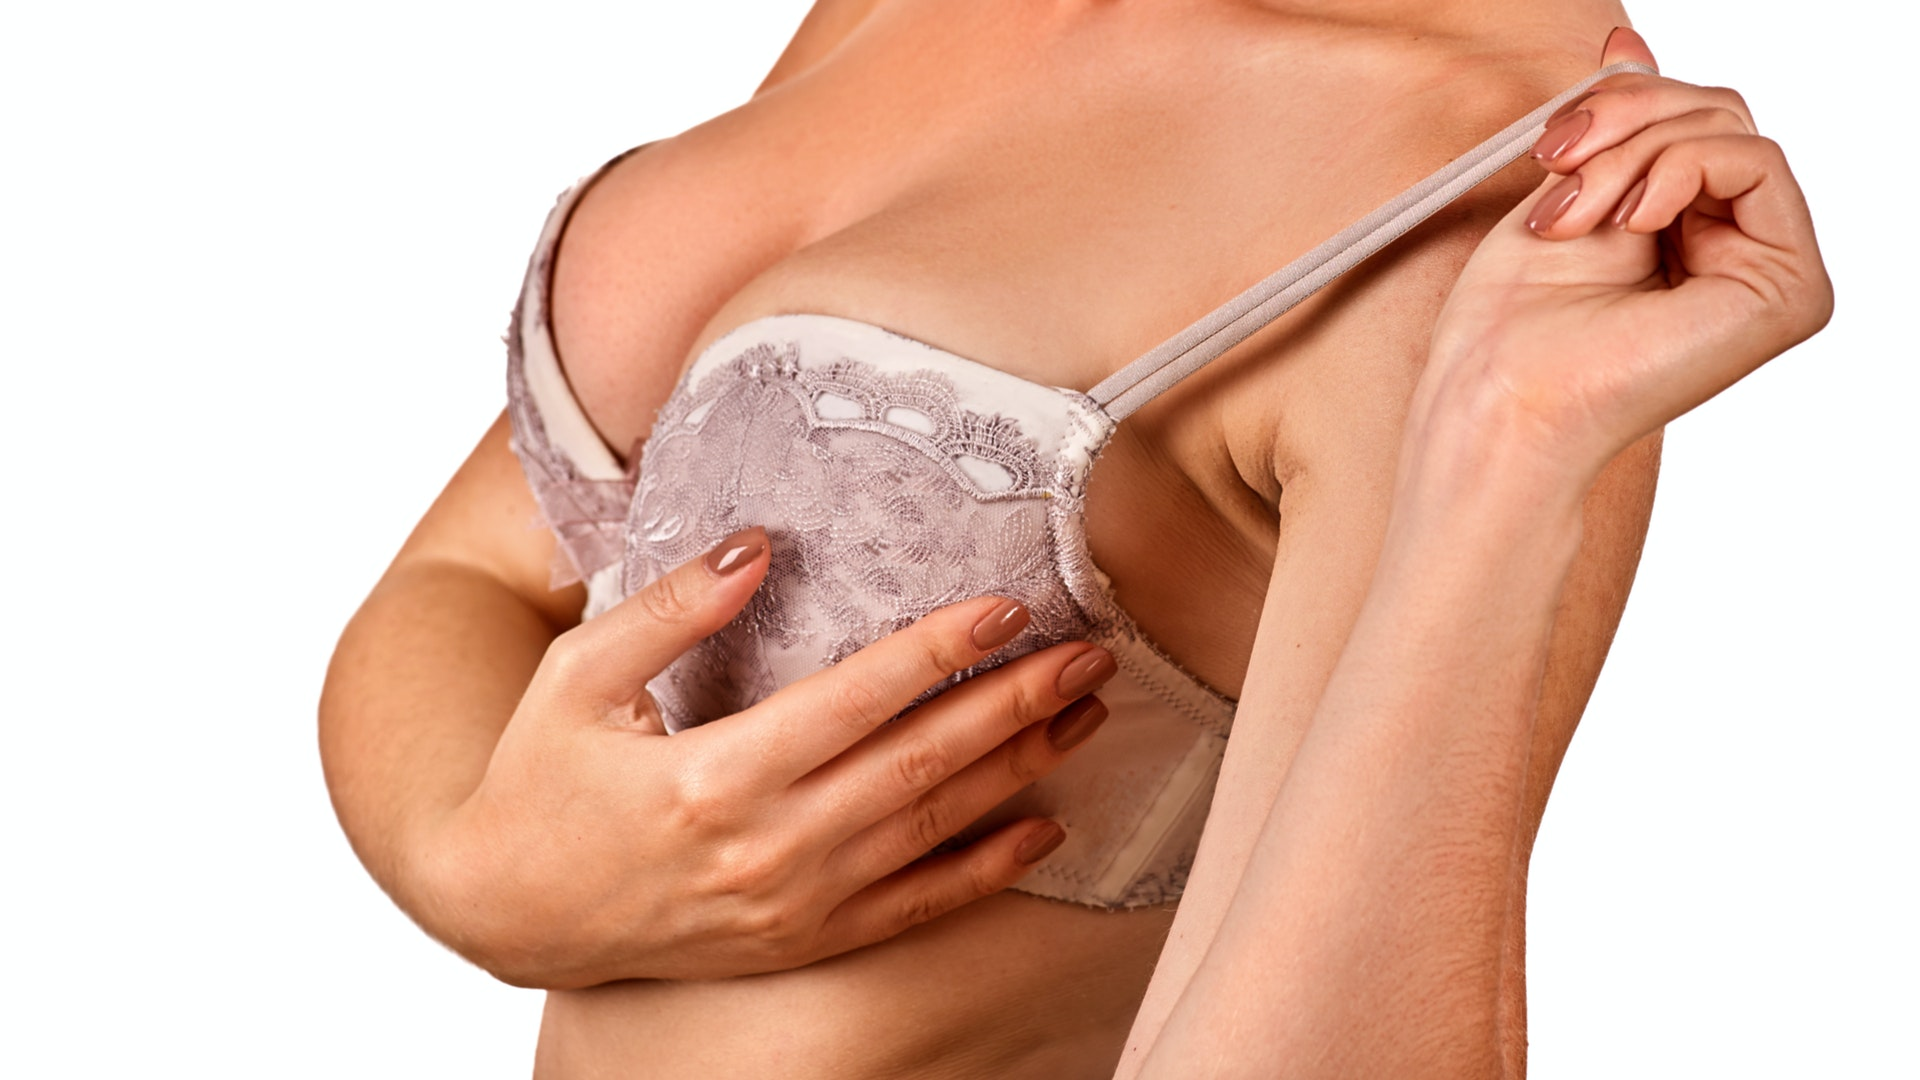 What causes sore swollen breasts